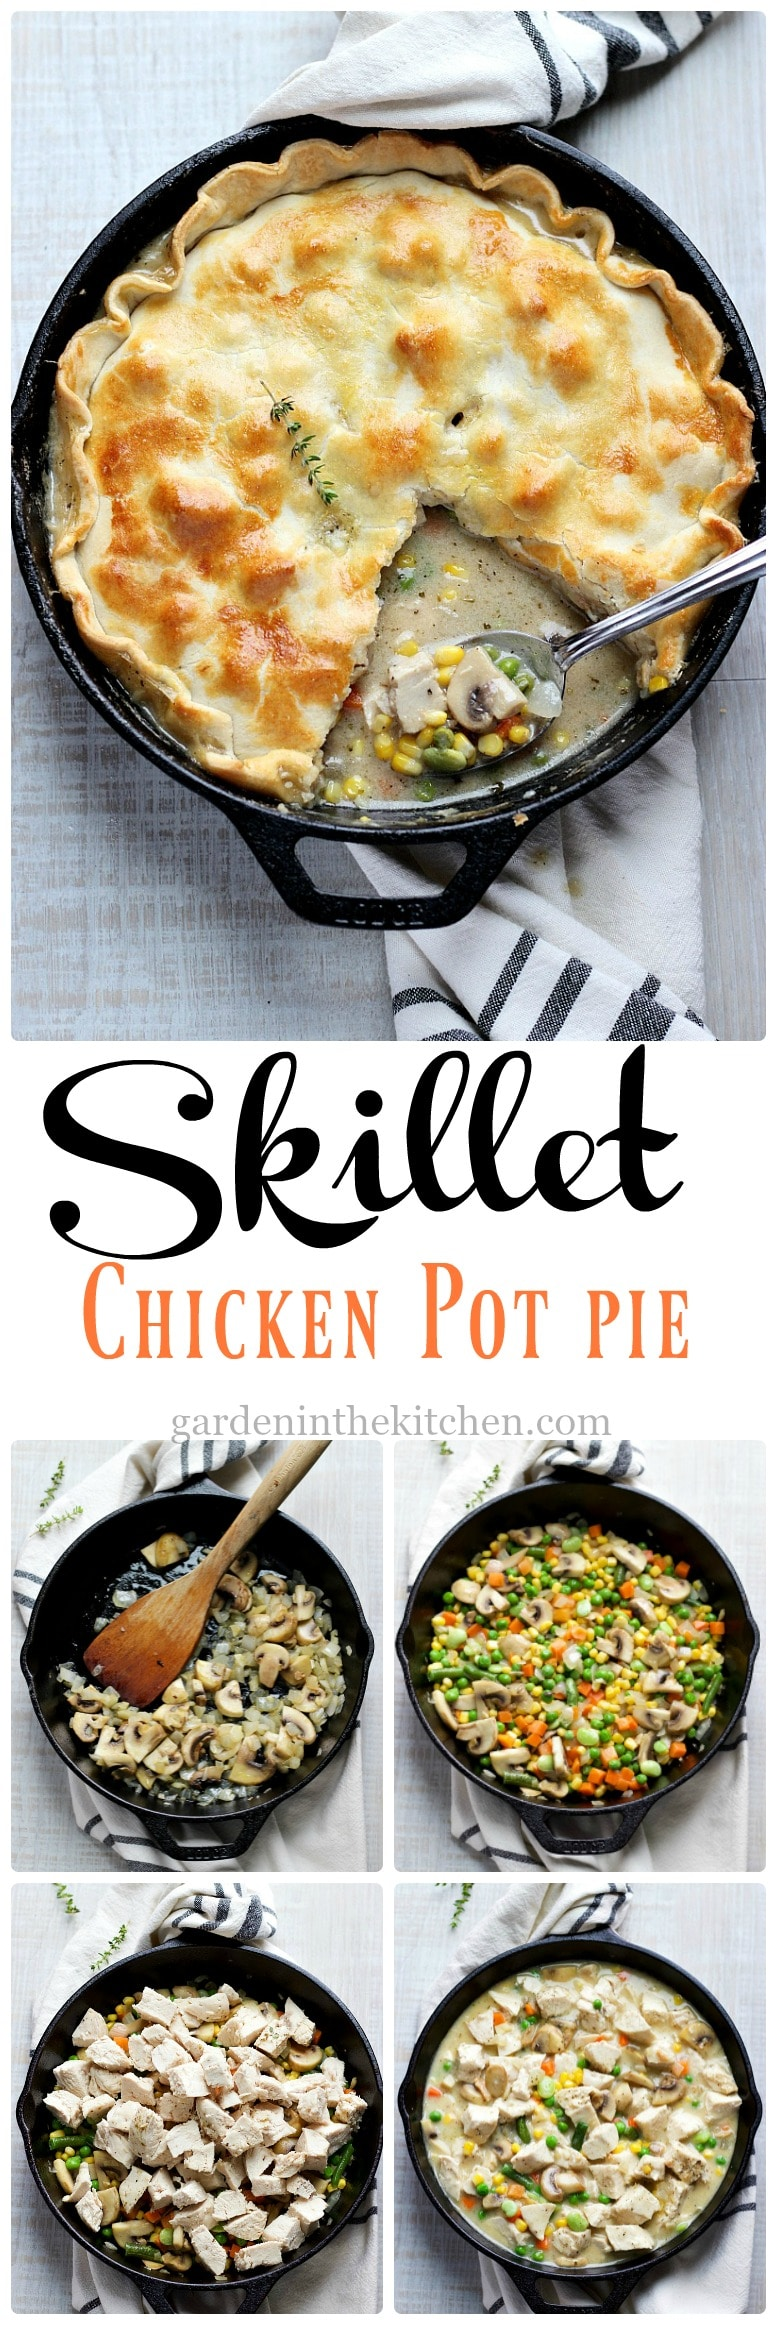 How To Make Skillet Chicken Pot Pie